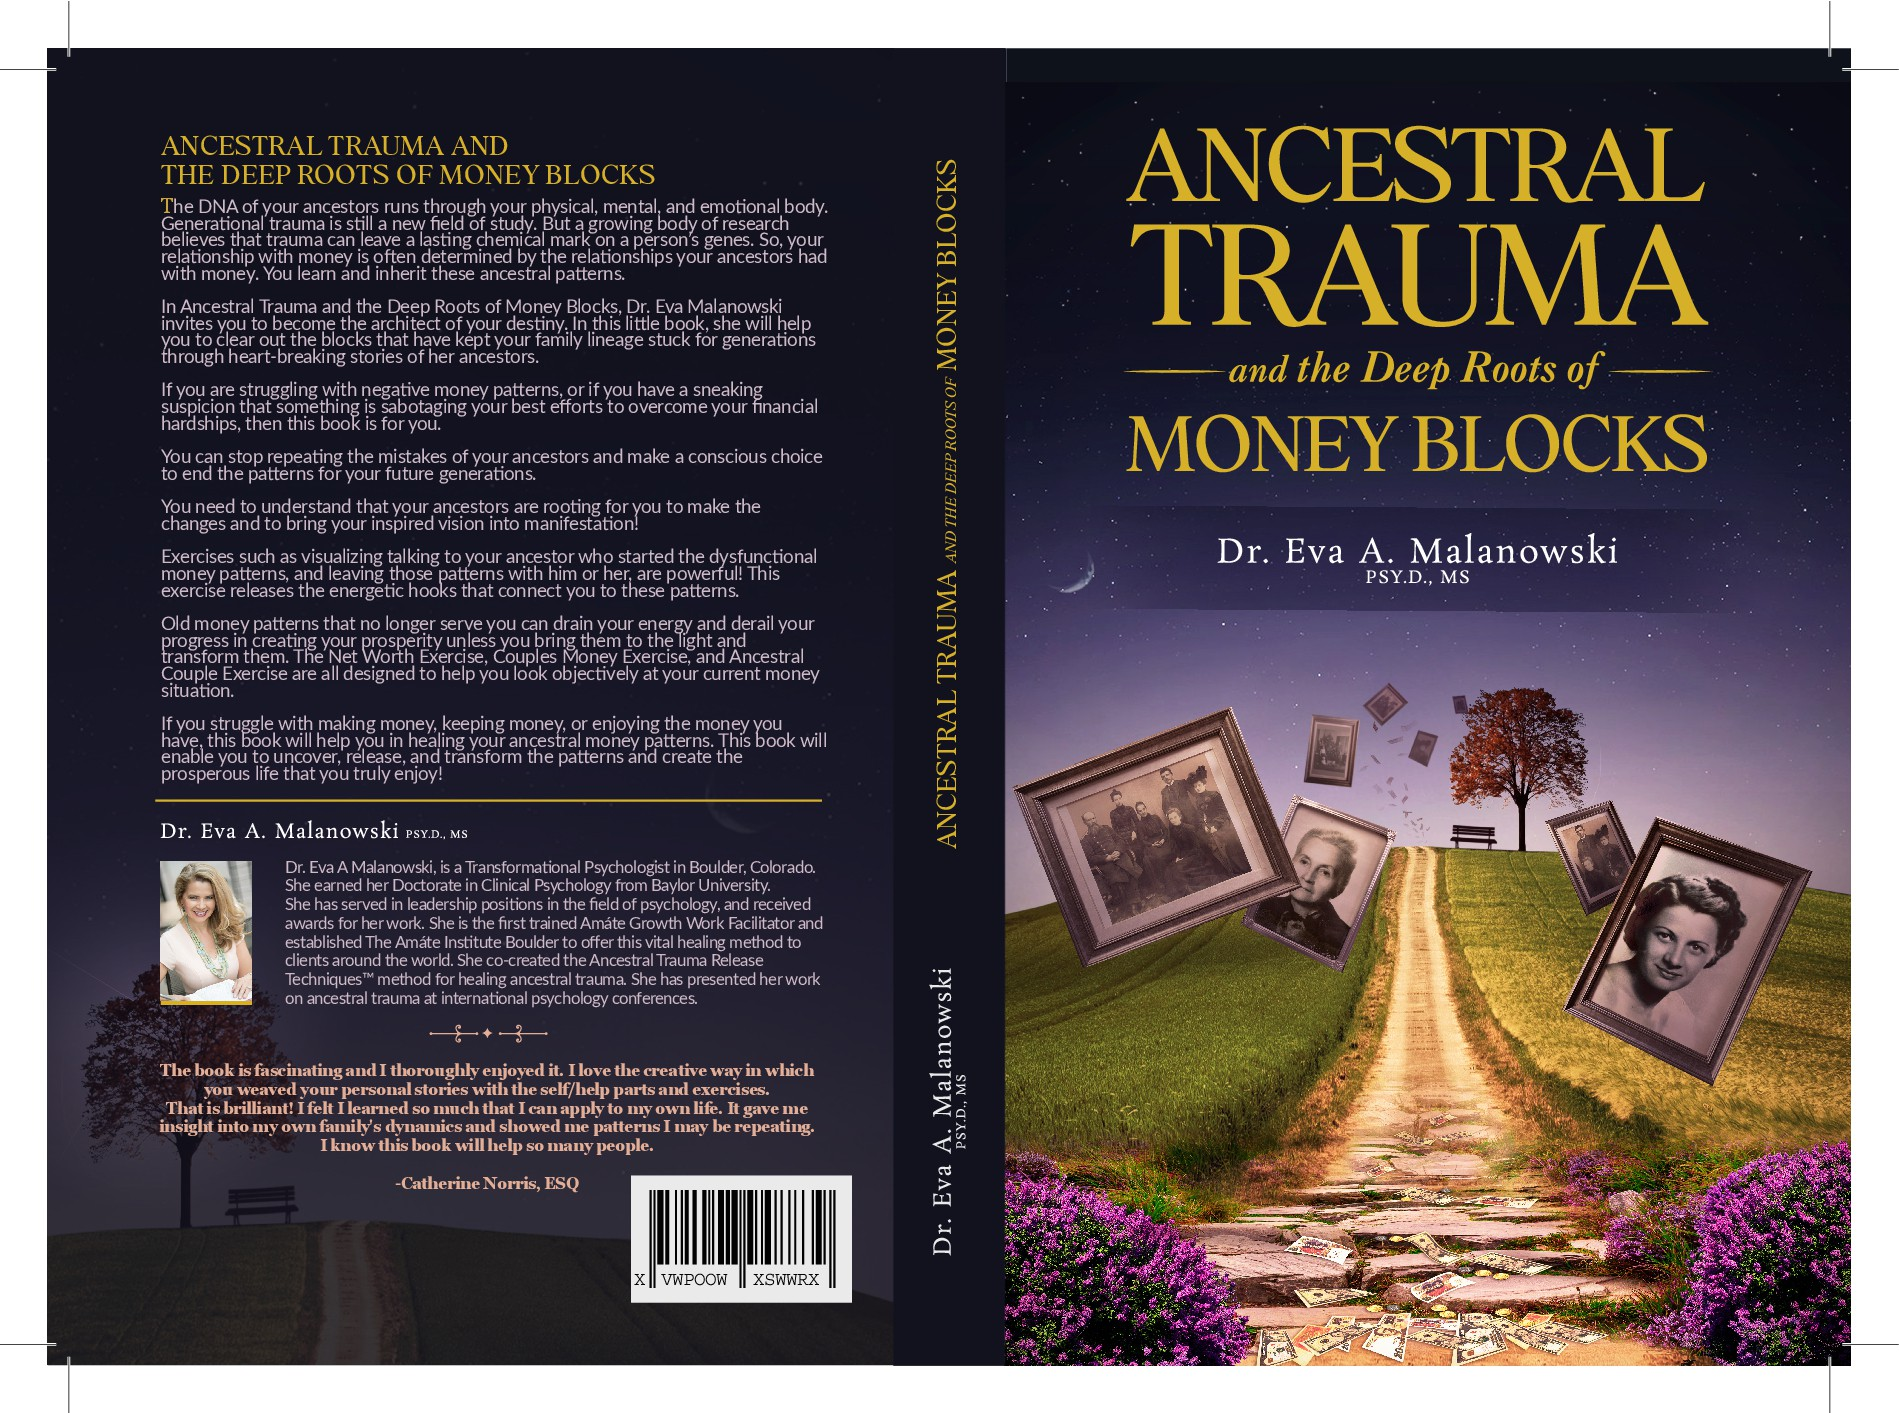 Create a beautiful, spiritual, mysterious, old-world feel cover for my book!